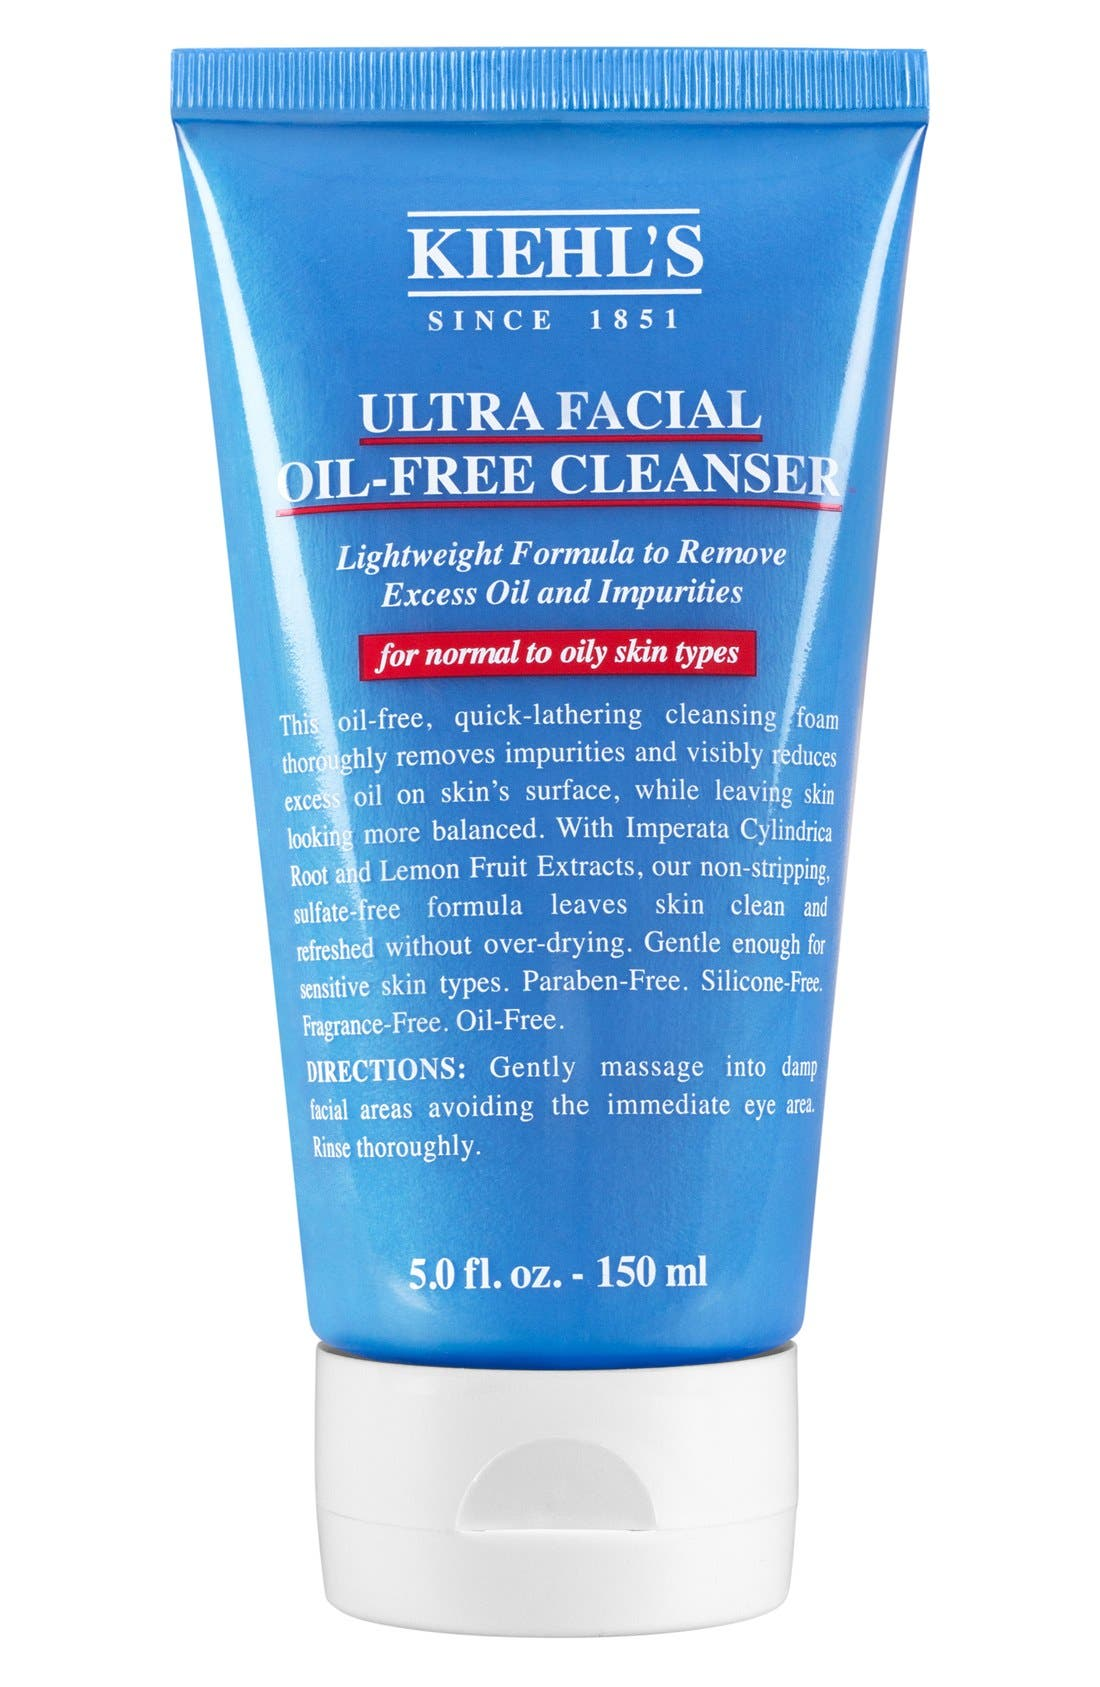 1851 Ultra Facial Oil-Free Cleanser